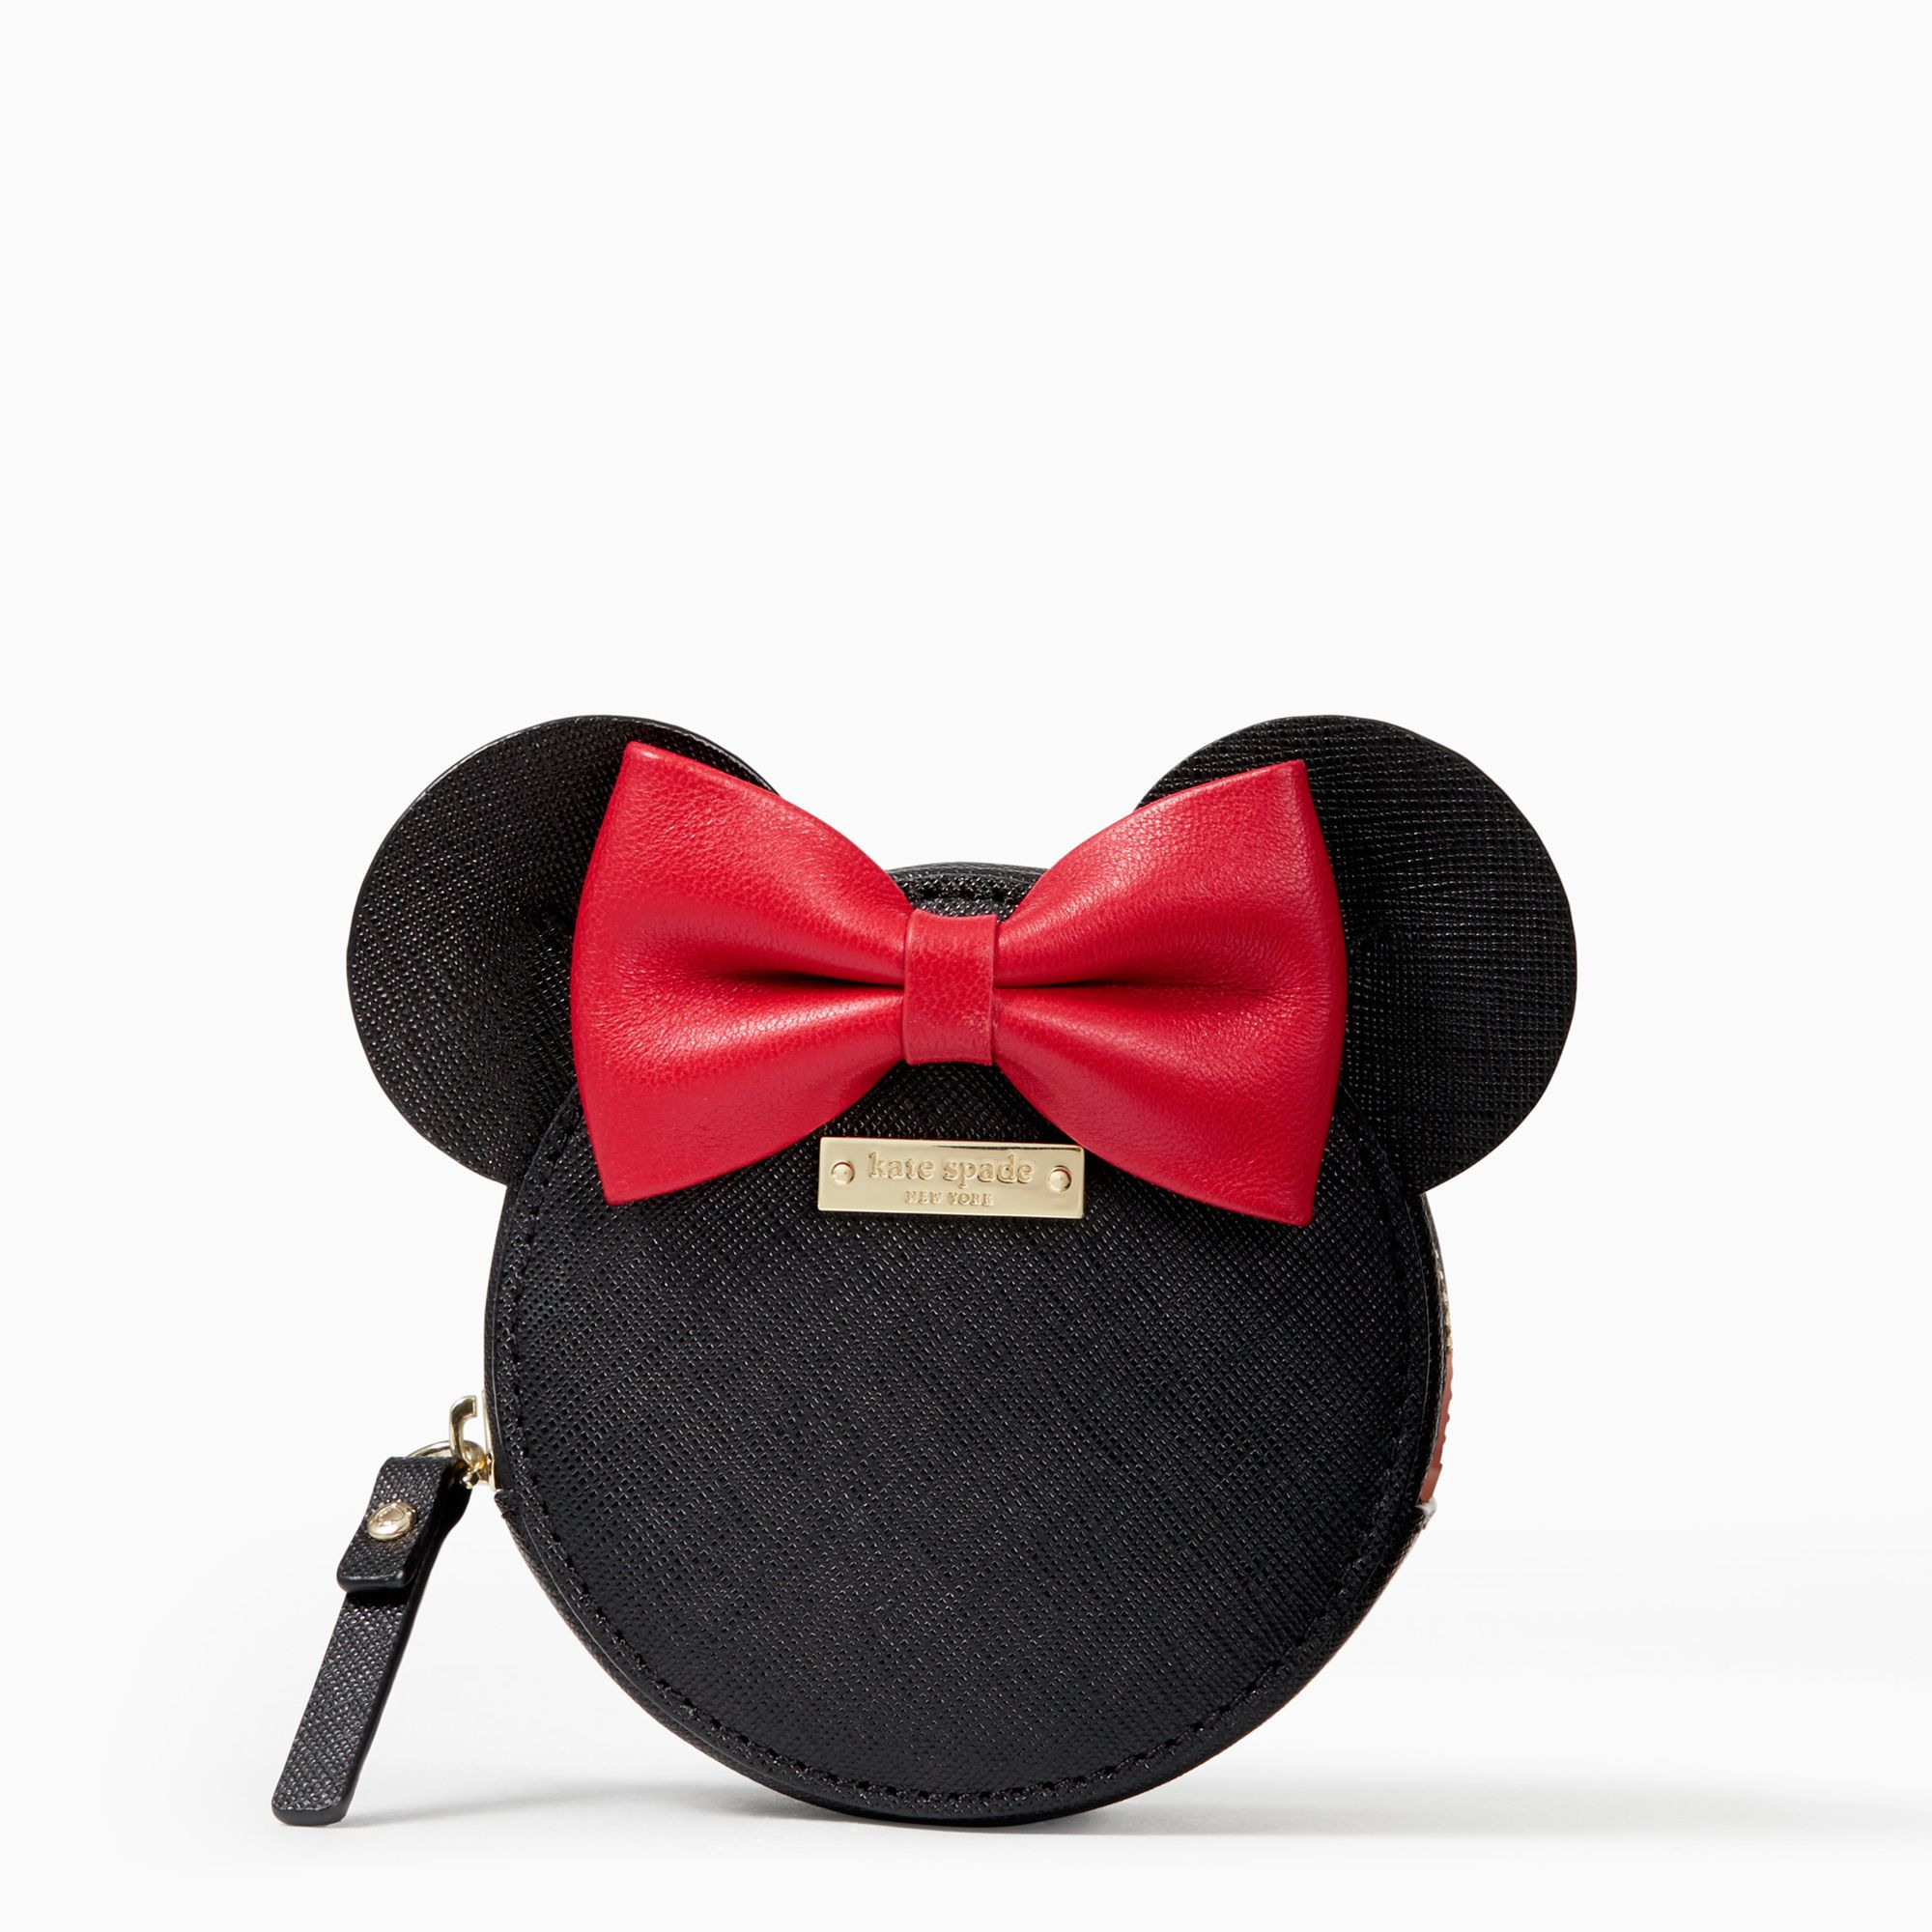 Minnie Mouse Inspired Accessories From Kate Spade